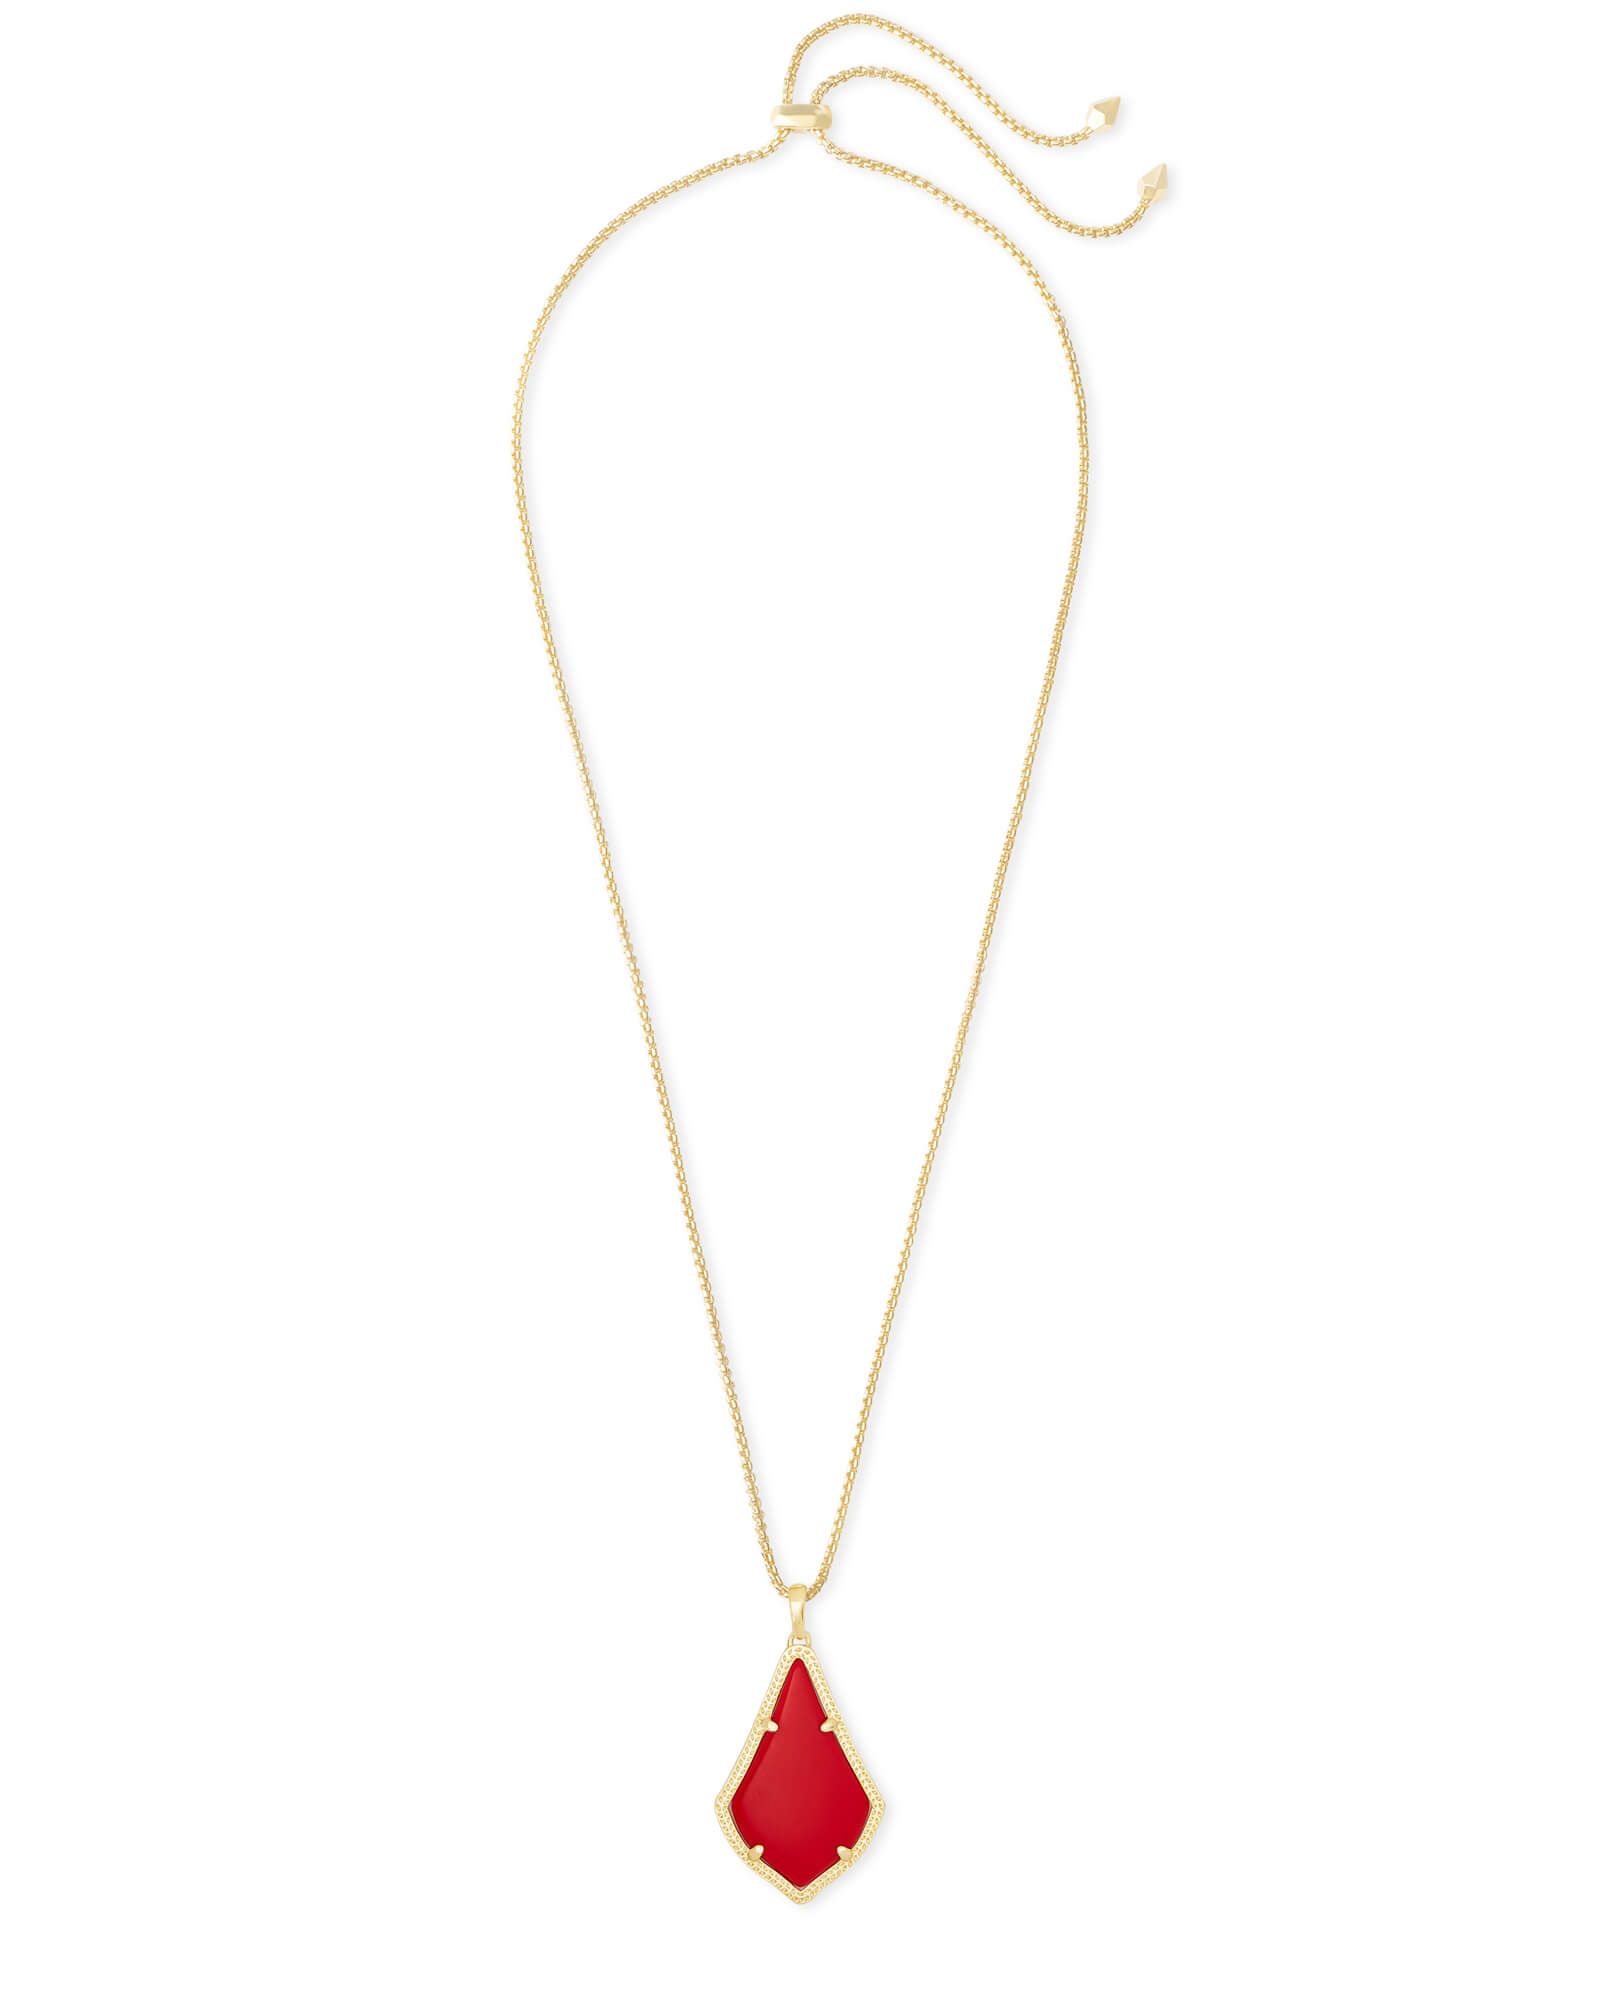 Alex Gold Pendant Necklace in Bright Red Opaque Glass